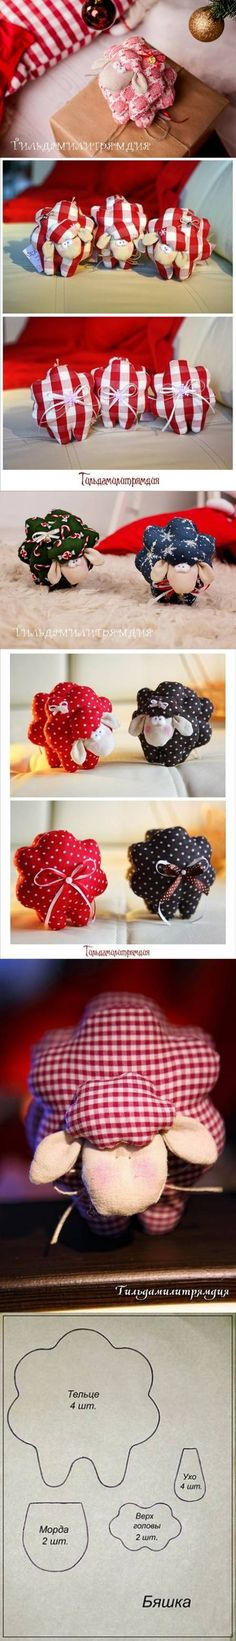 DIY Cute Fabric Lamb